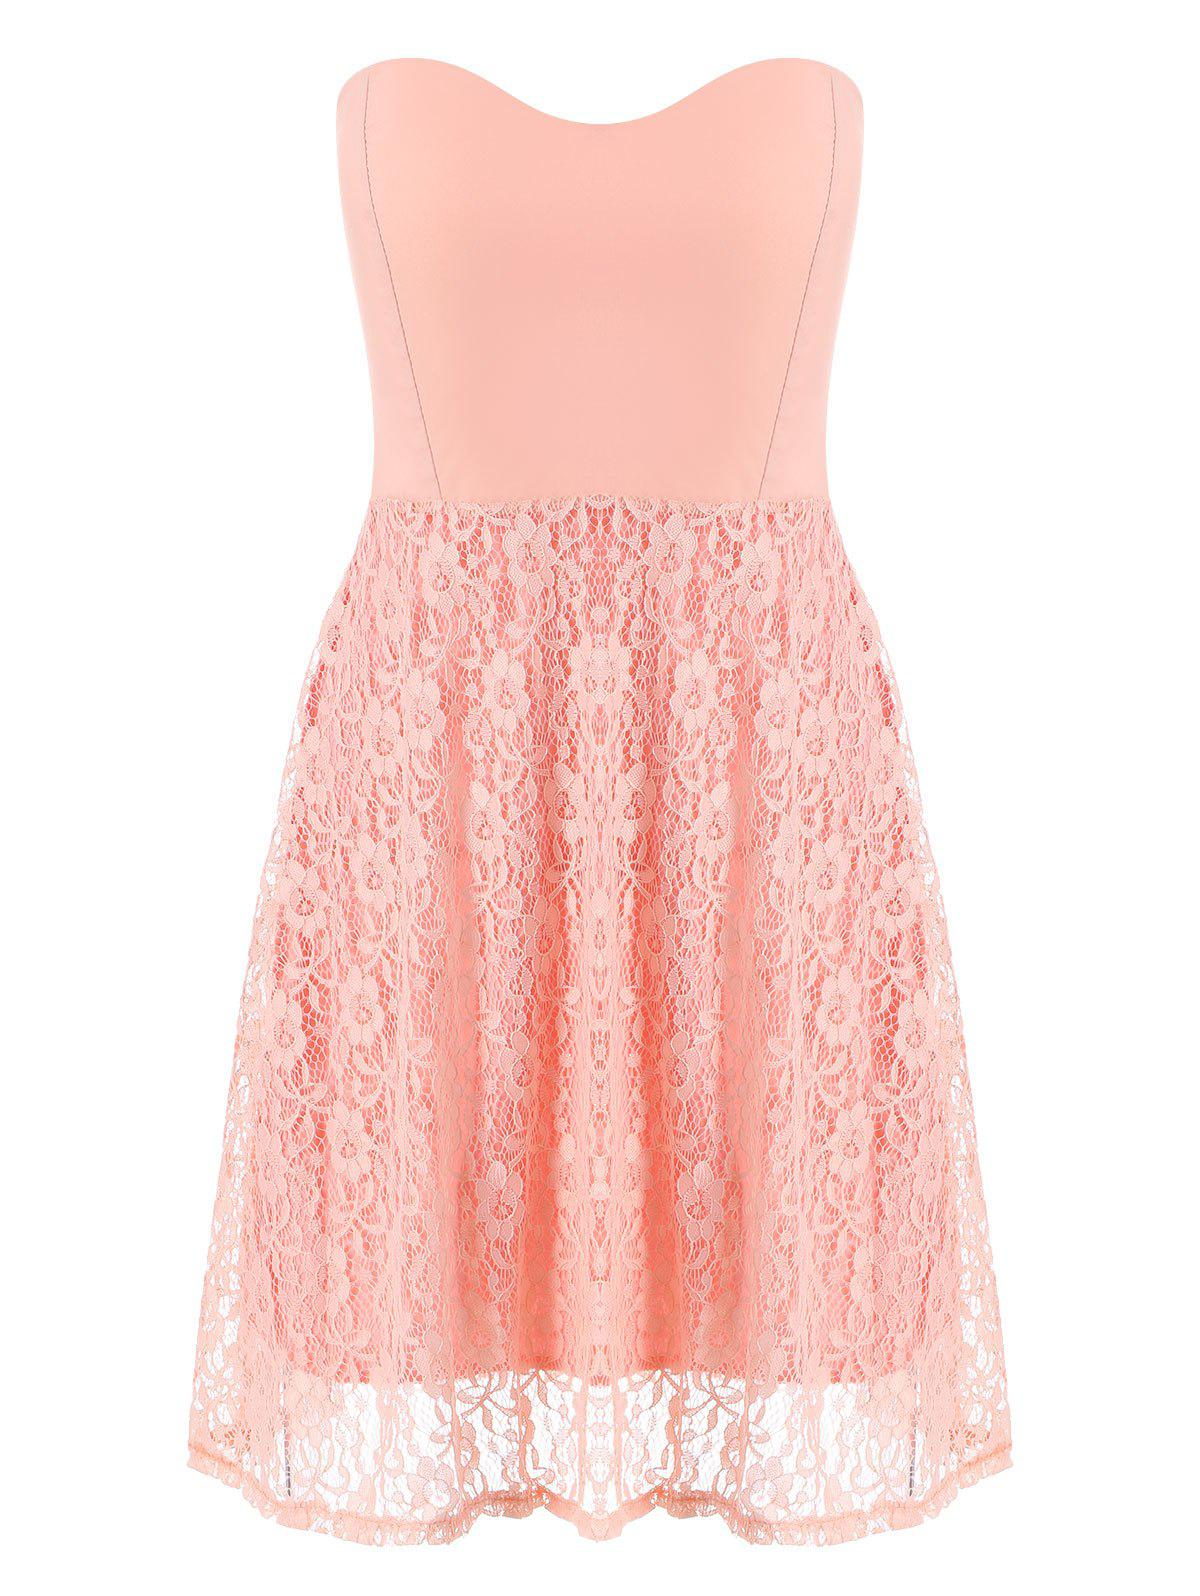 Buy Lace Strapless Sleeveless Mini Cocktail Dress